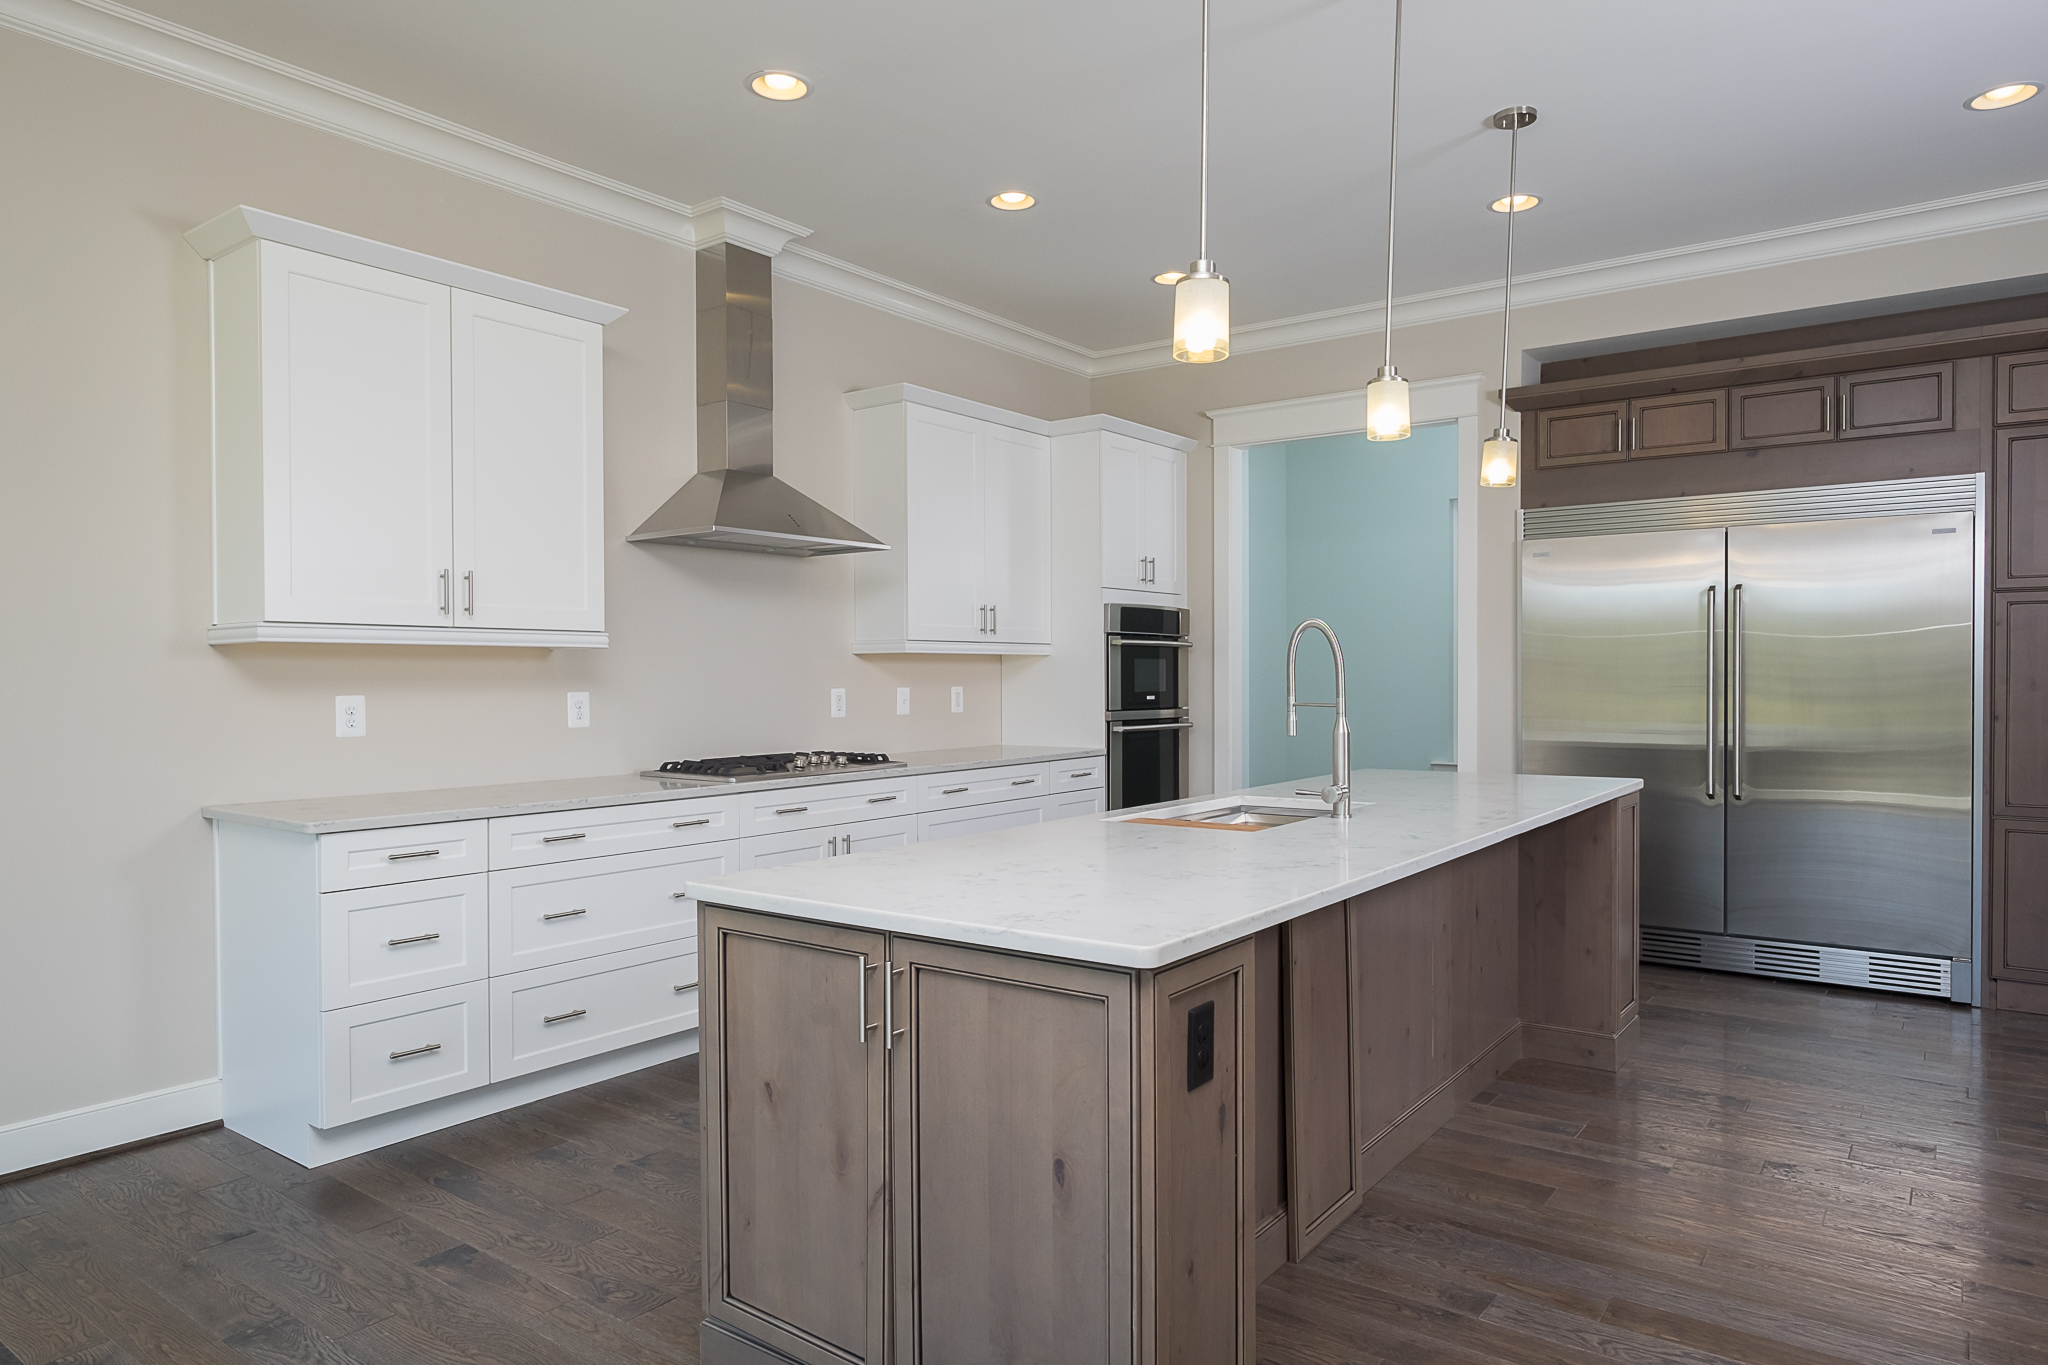 Kitchens Photos. New Homes in Central Maryland